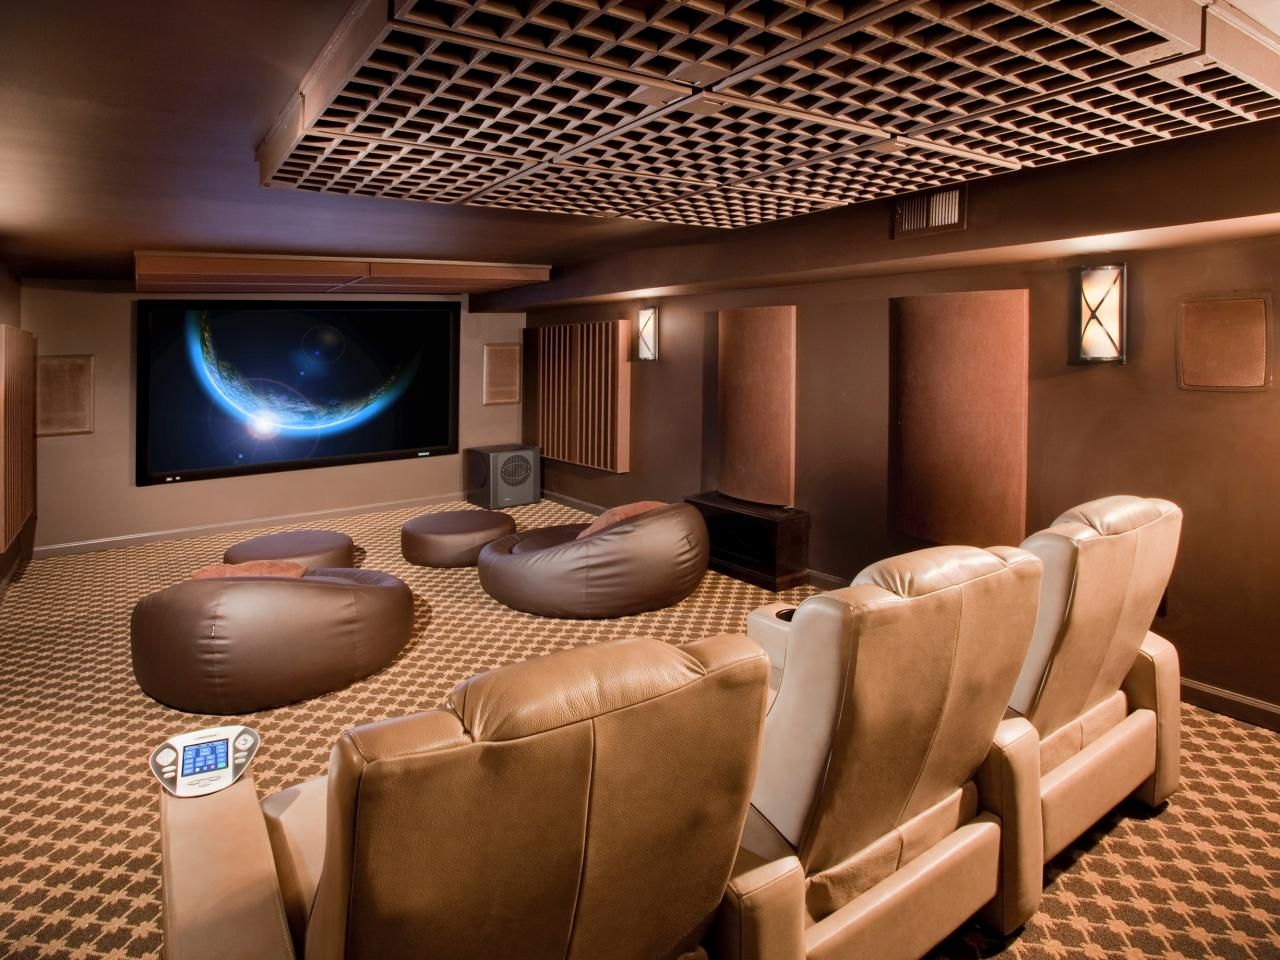 Get All The Info You Ll Need On Media Room Furniture And Accessories And Get Ready To Design A Comf Home Theater Seating Home Theater Rooms Media Room Seating